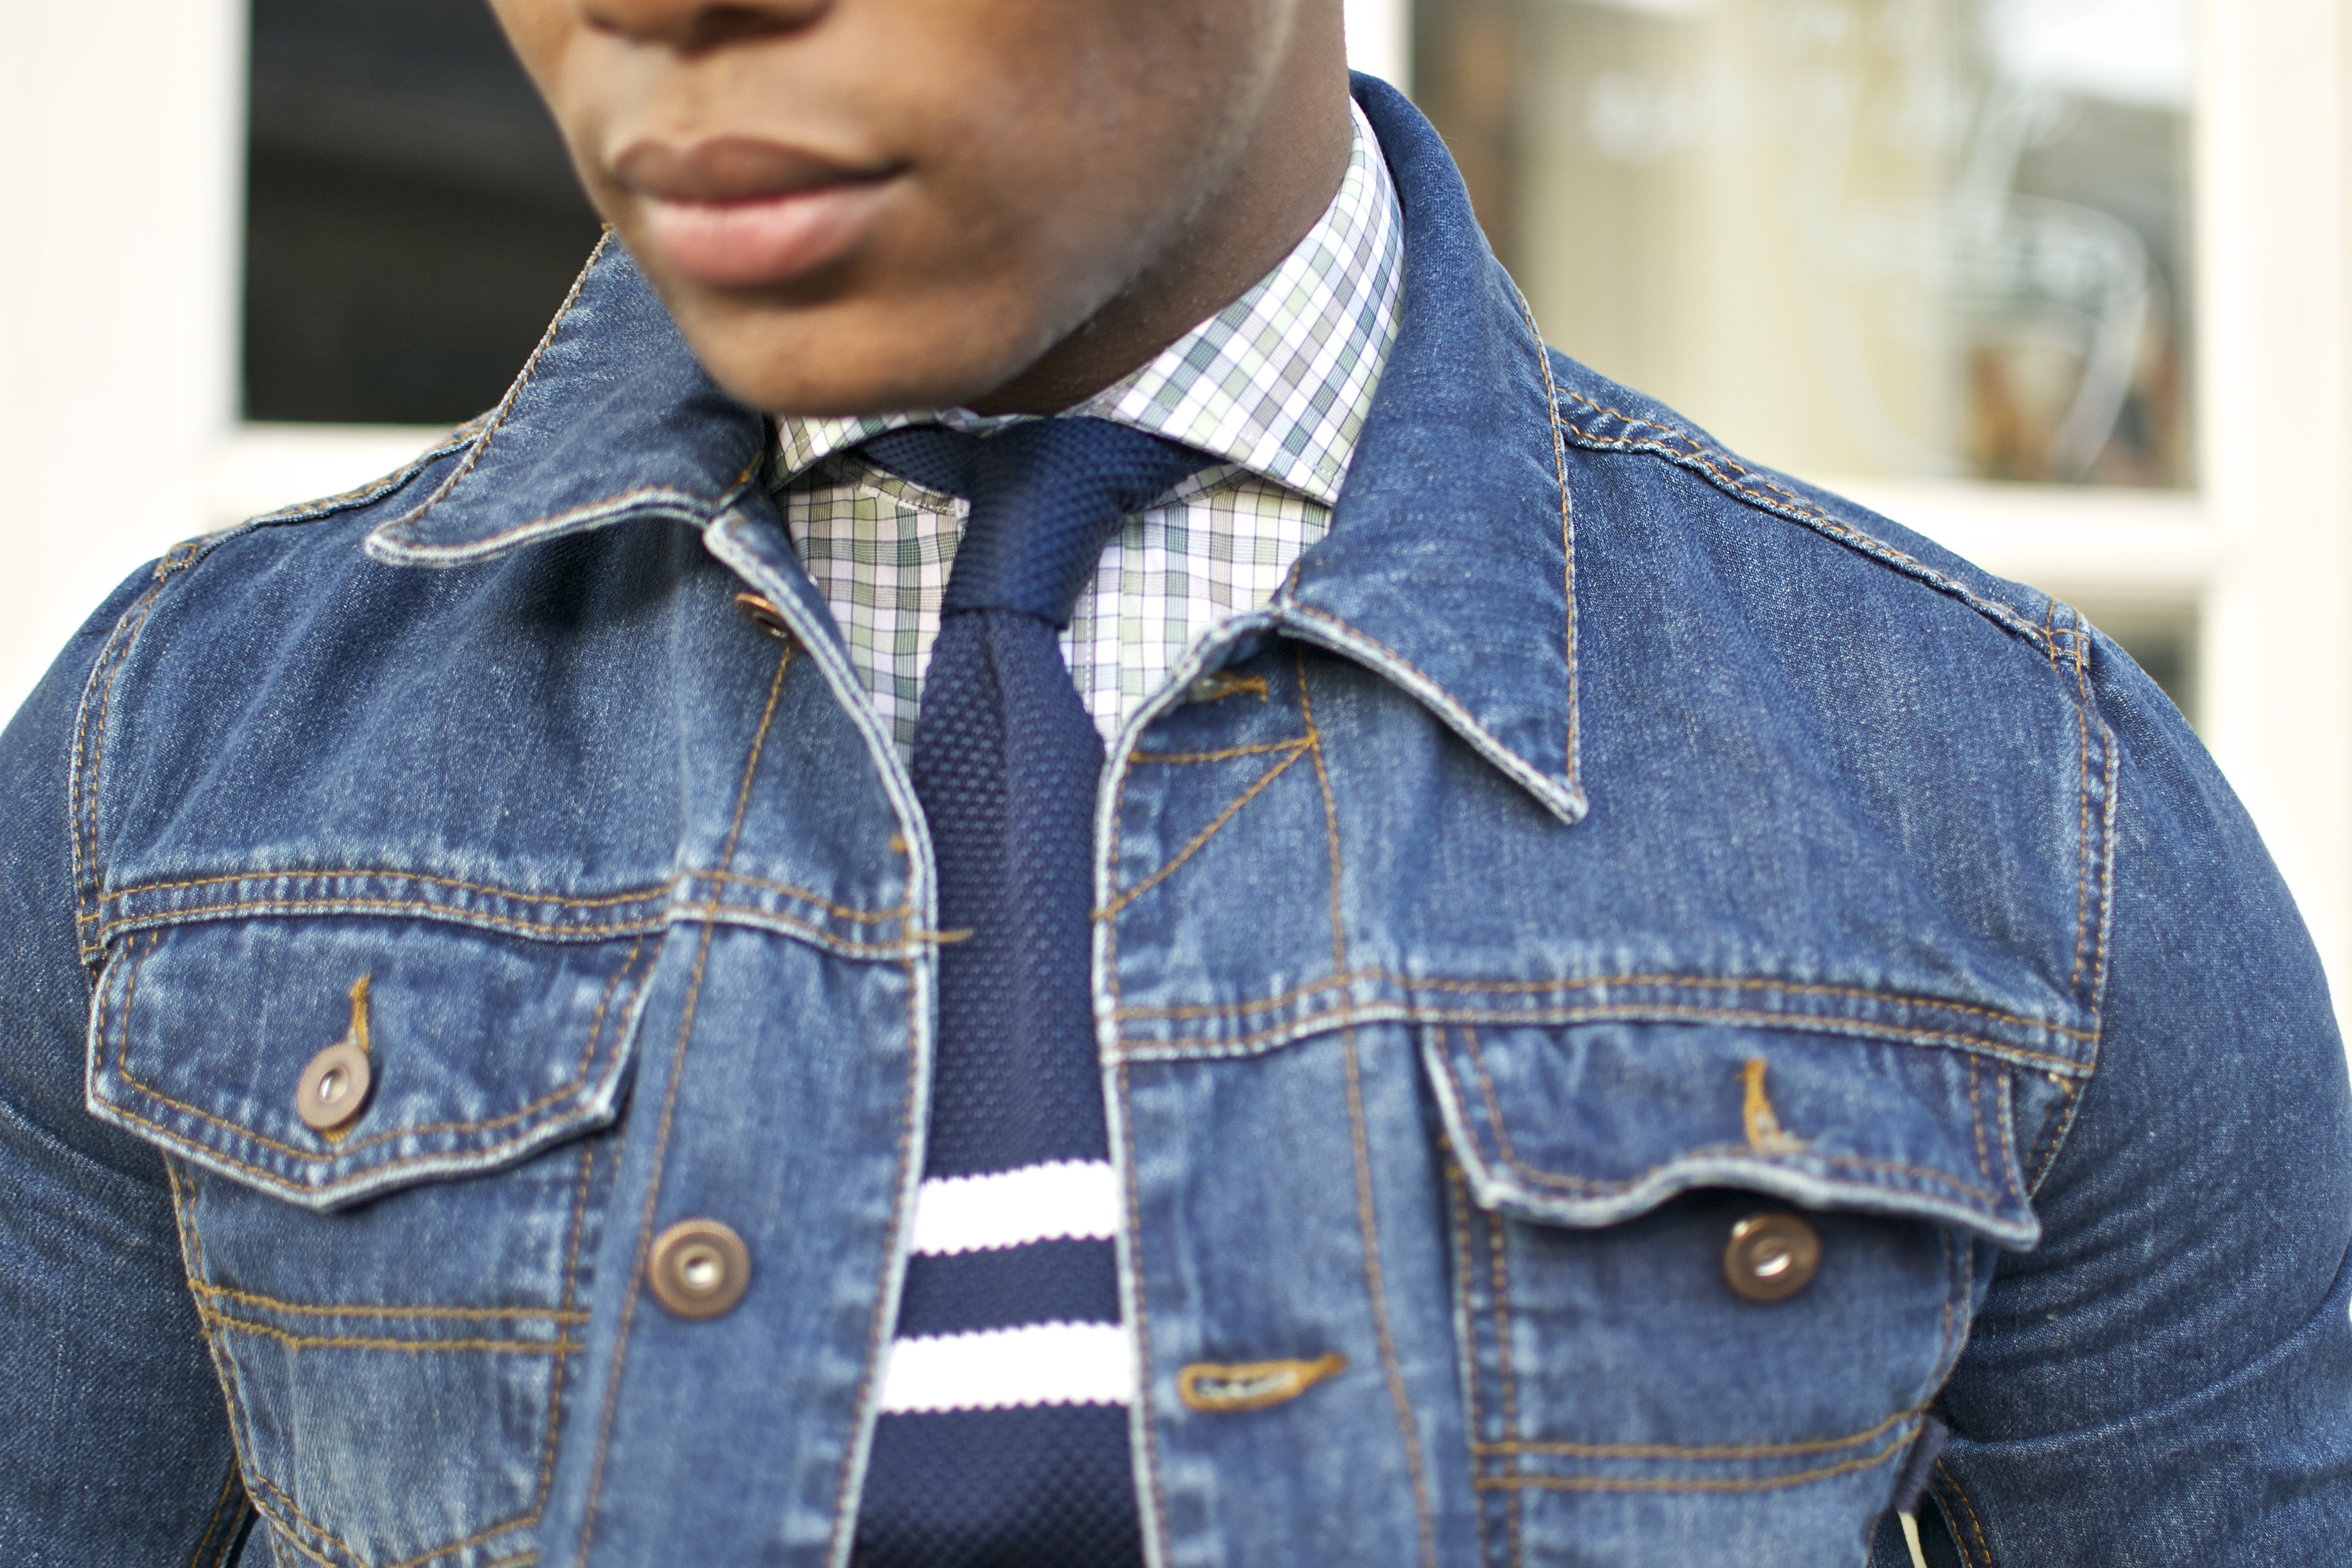 Gingham Hugh & Crye Shirt with Asos Denim Jacket